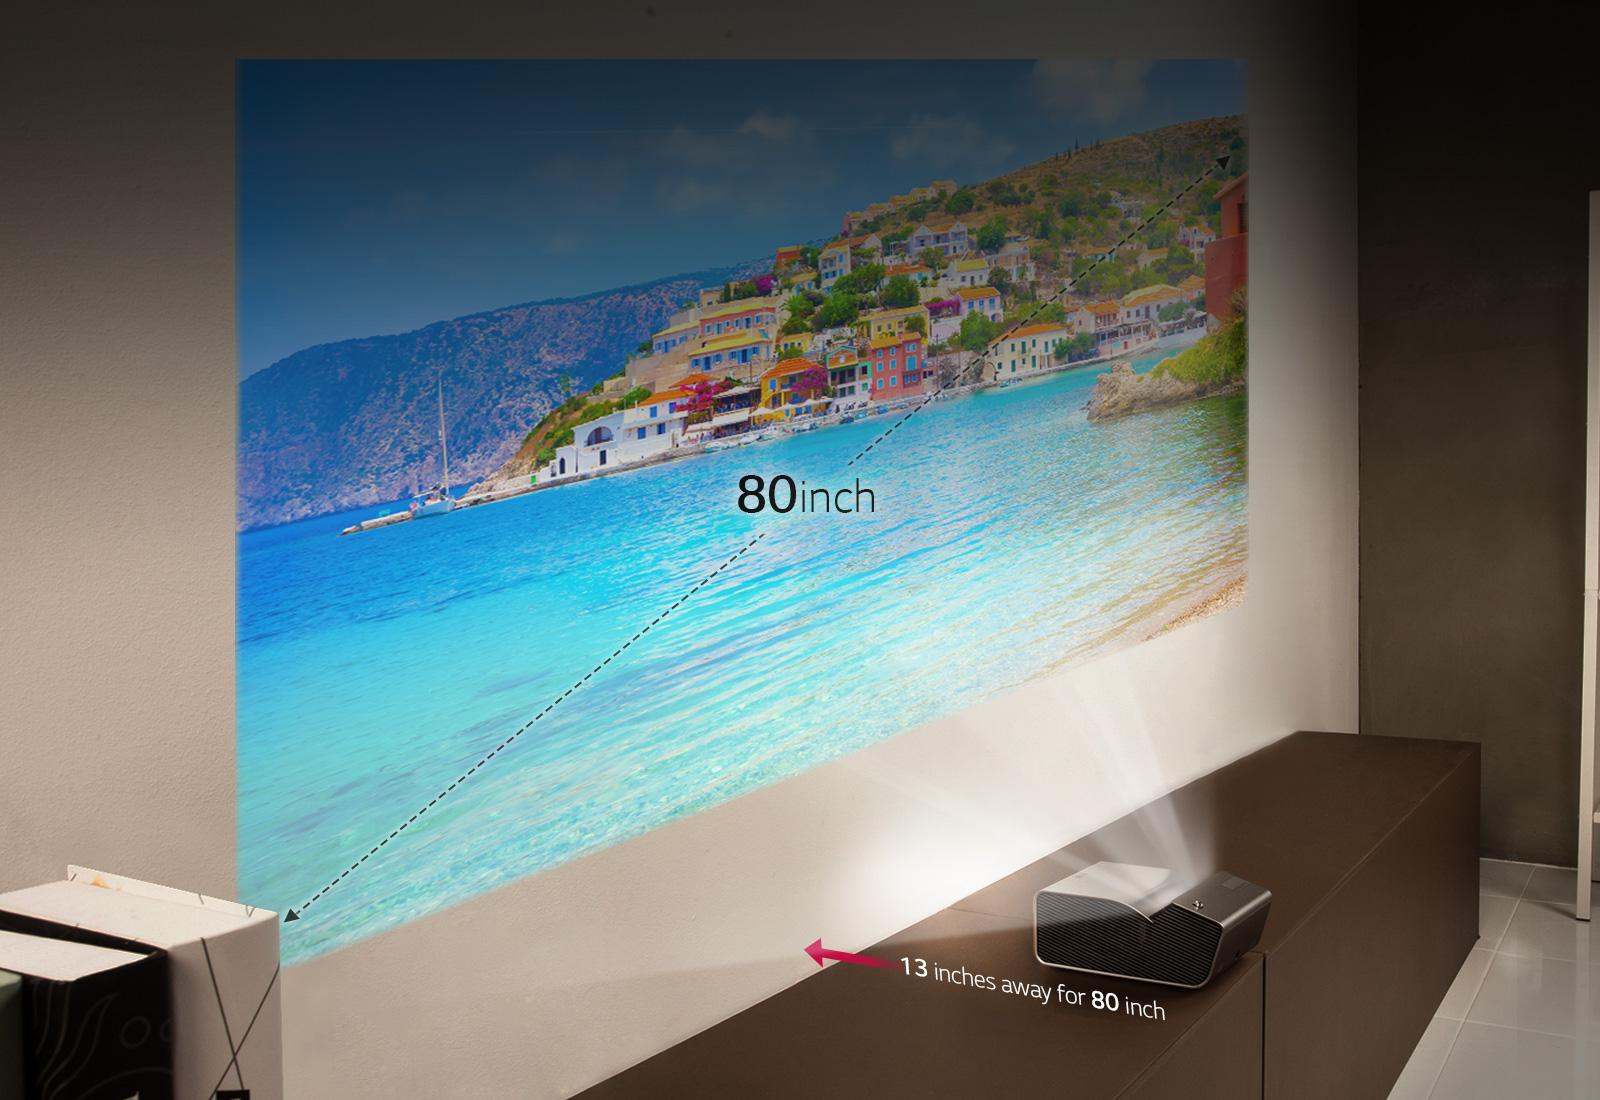 Lg Ph450u Ultra Short Throw Led Projector With Embedded